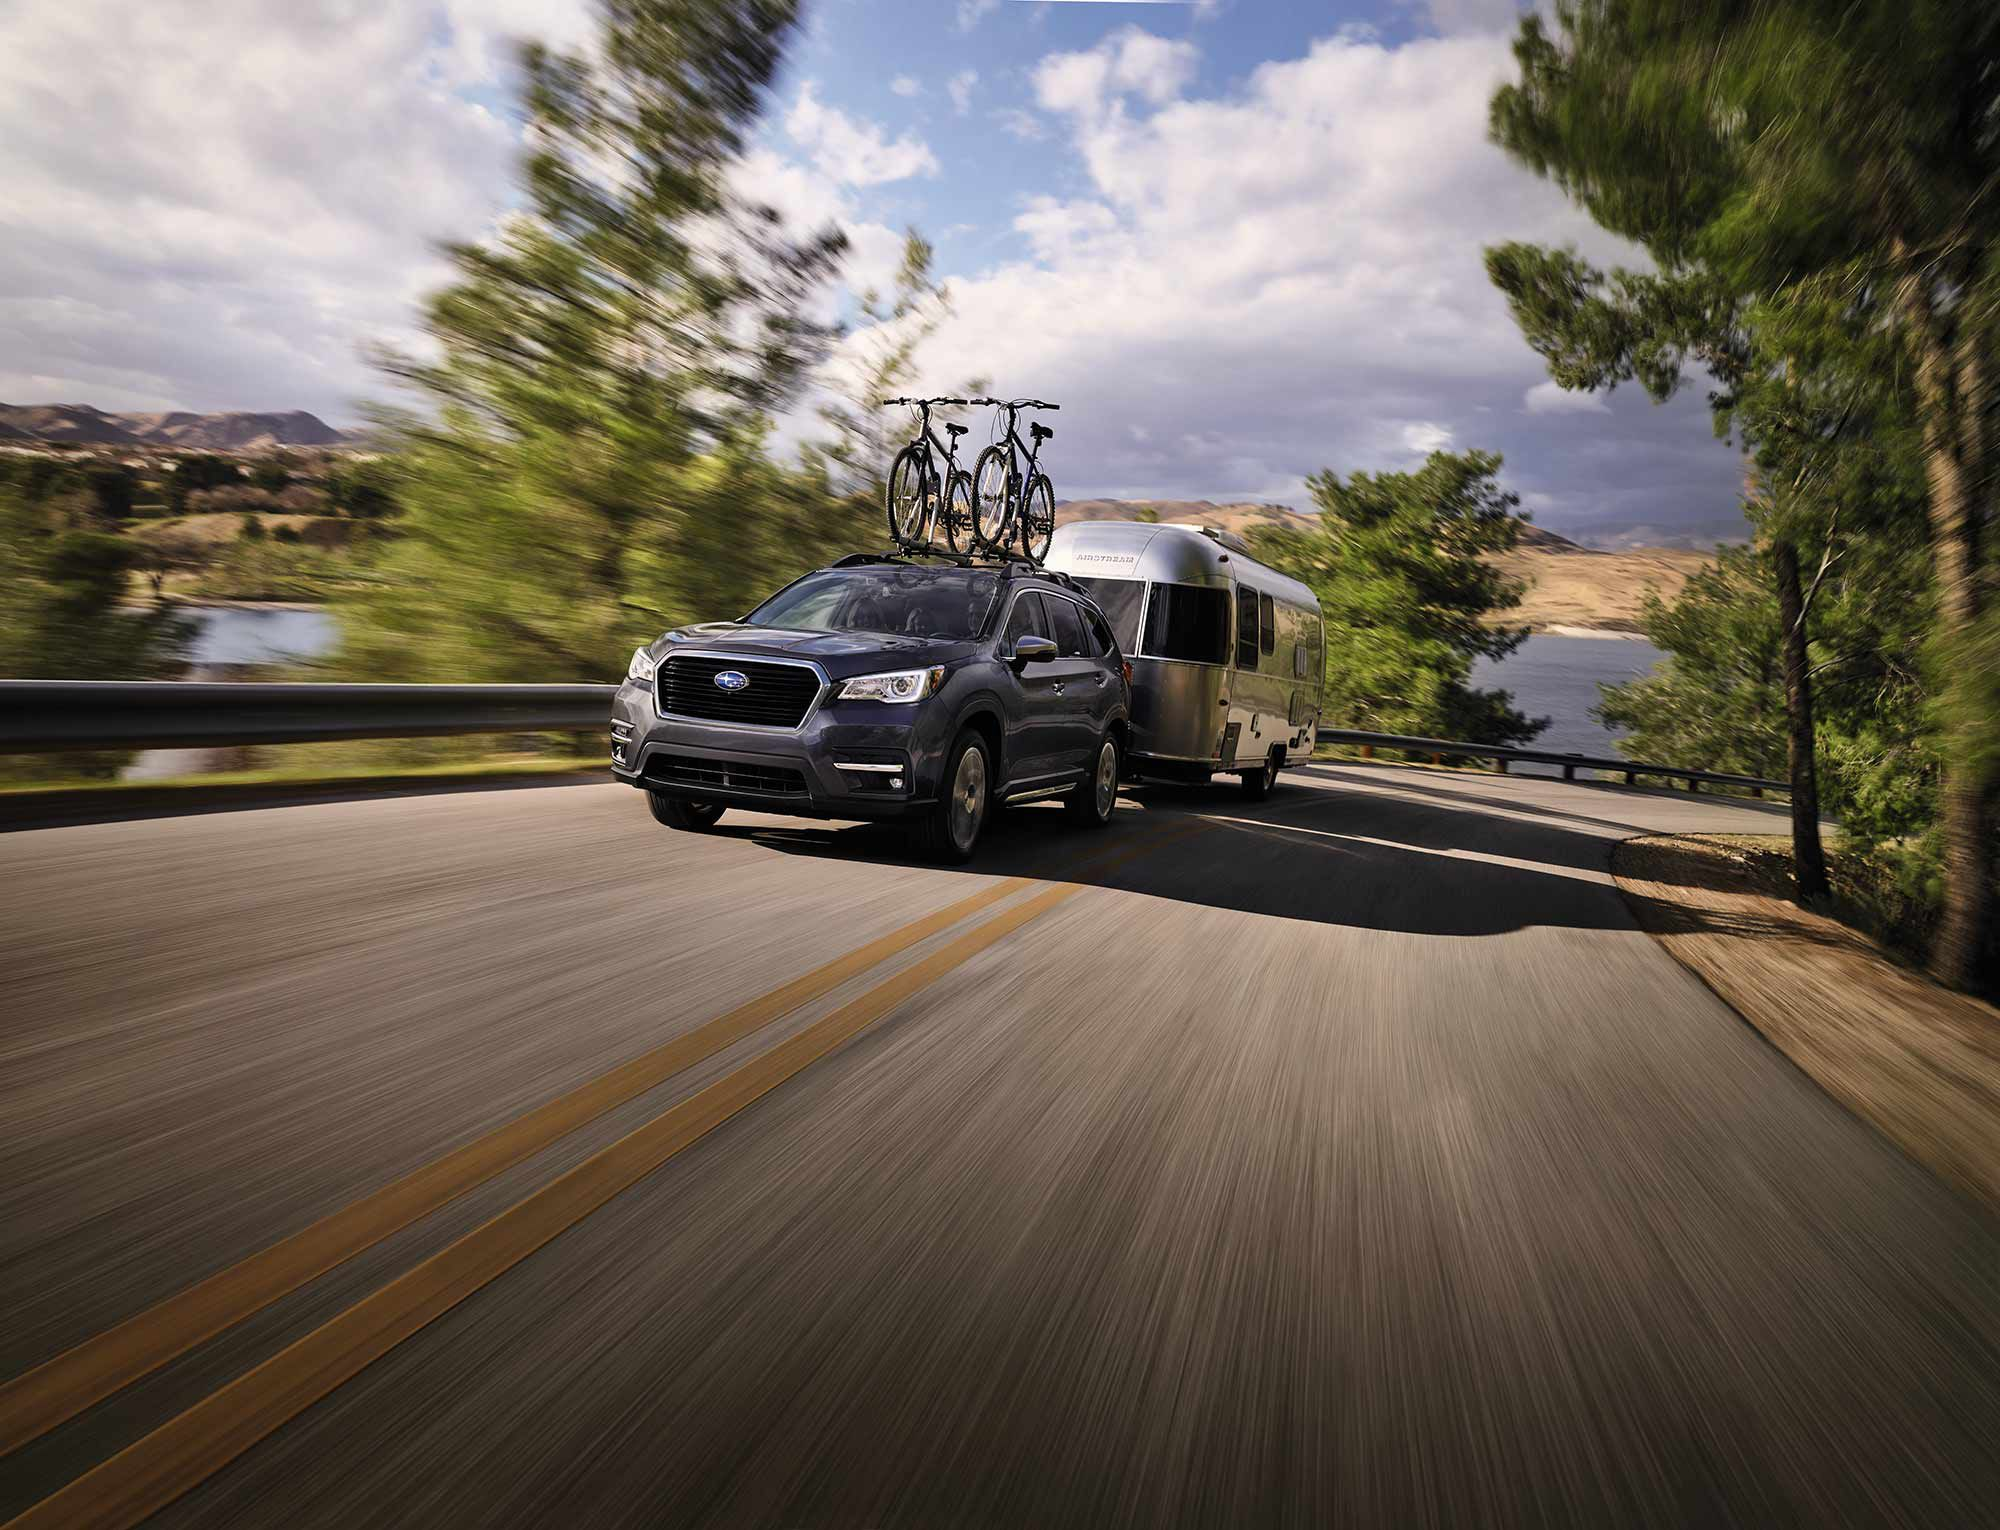 The 2021 Subaru Ascent can tow up to 5,000 pounds.